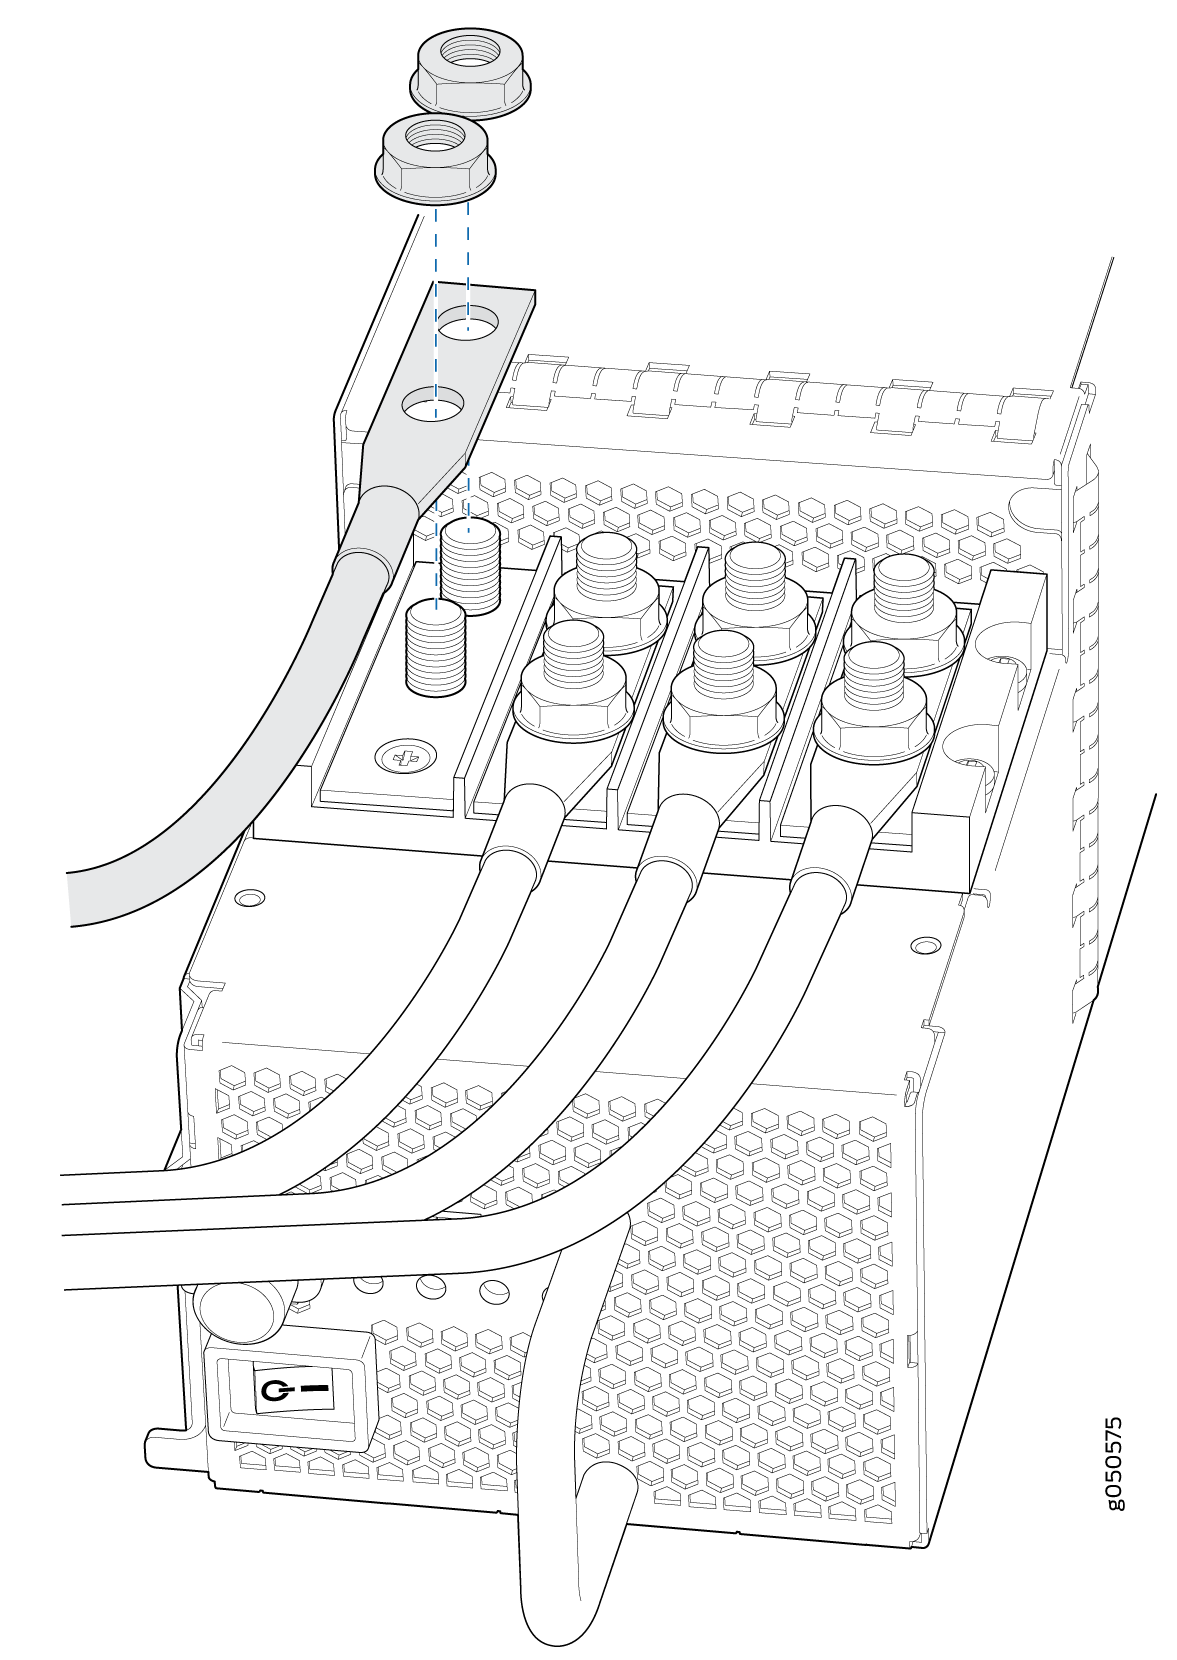 Connecting the DC Power Supply Cables to a PTX10000